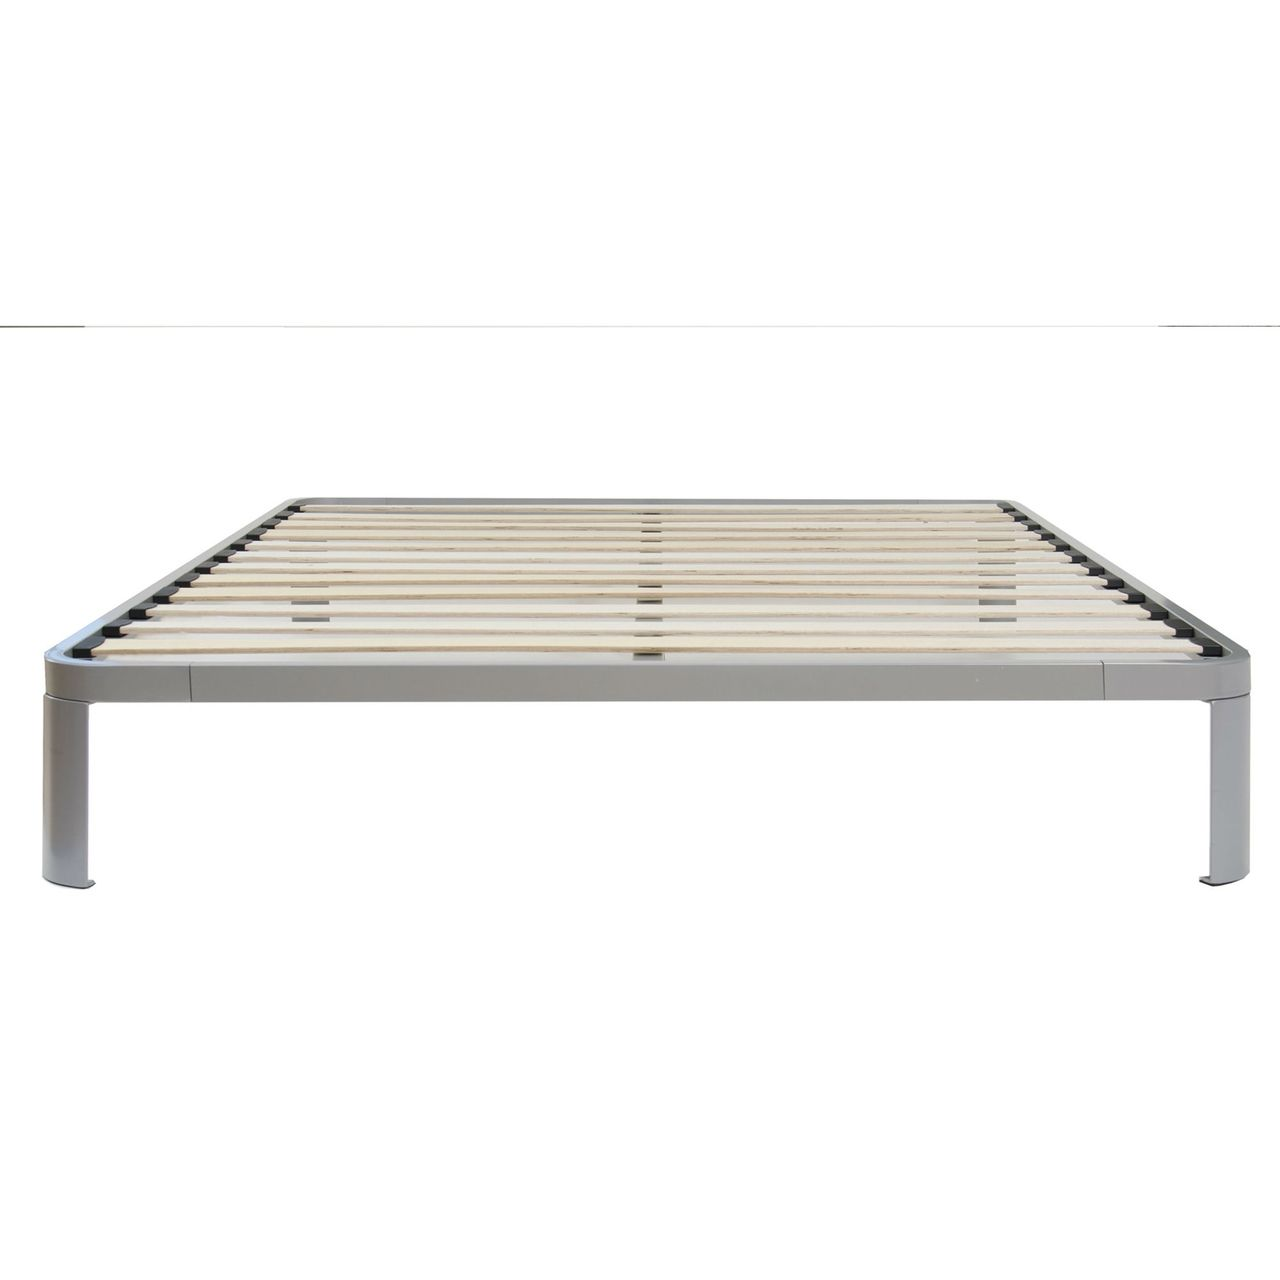 Full Luna Metal Platform Bed Frame With Wooden Slats Metal